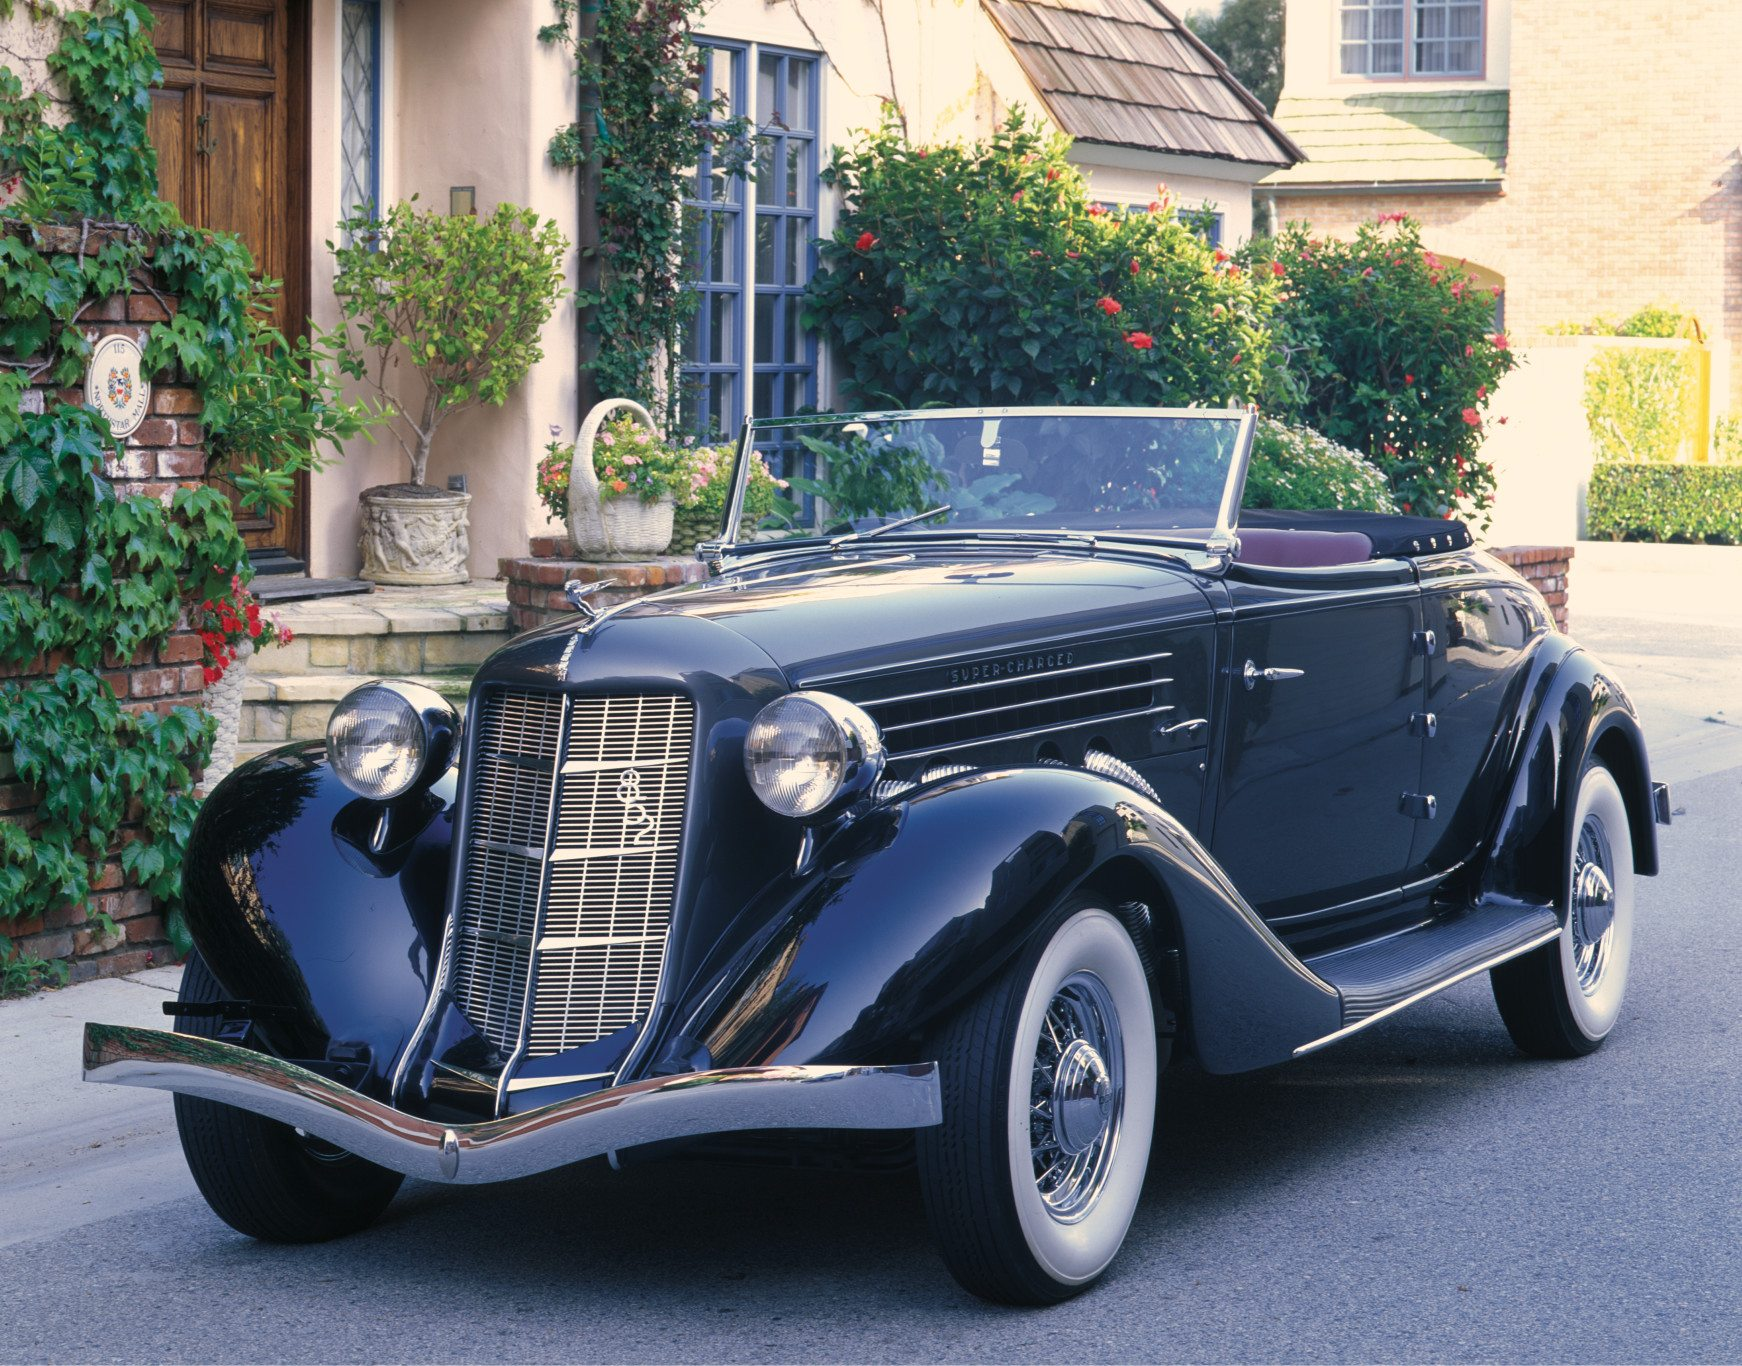 1936 Auburn 852 Supercharged Cabriolet